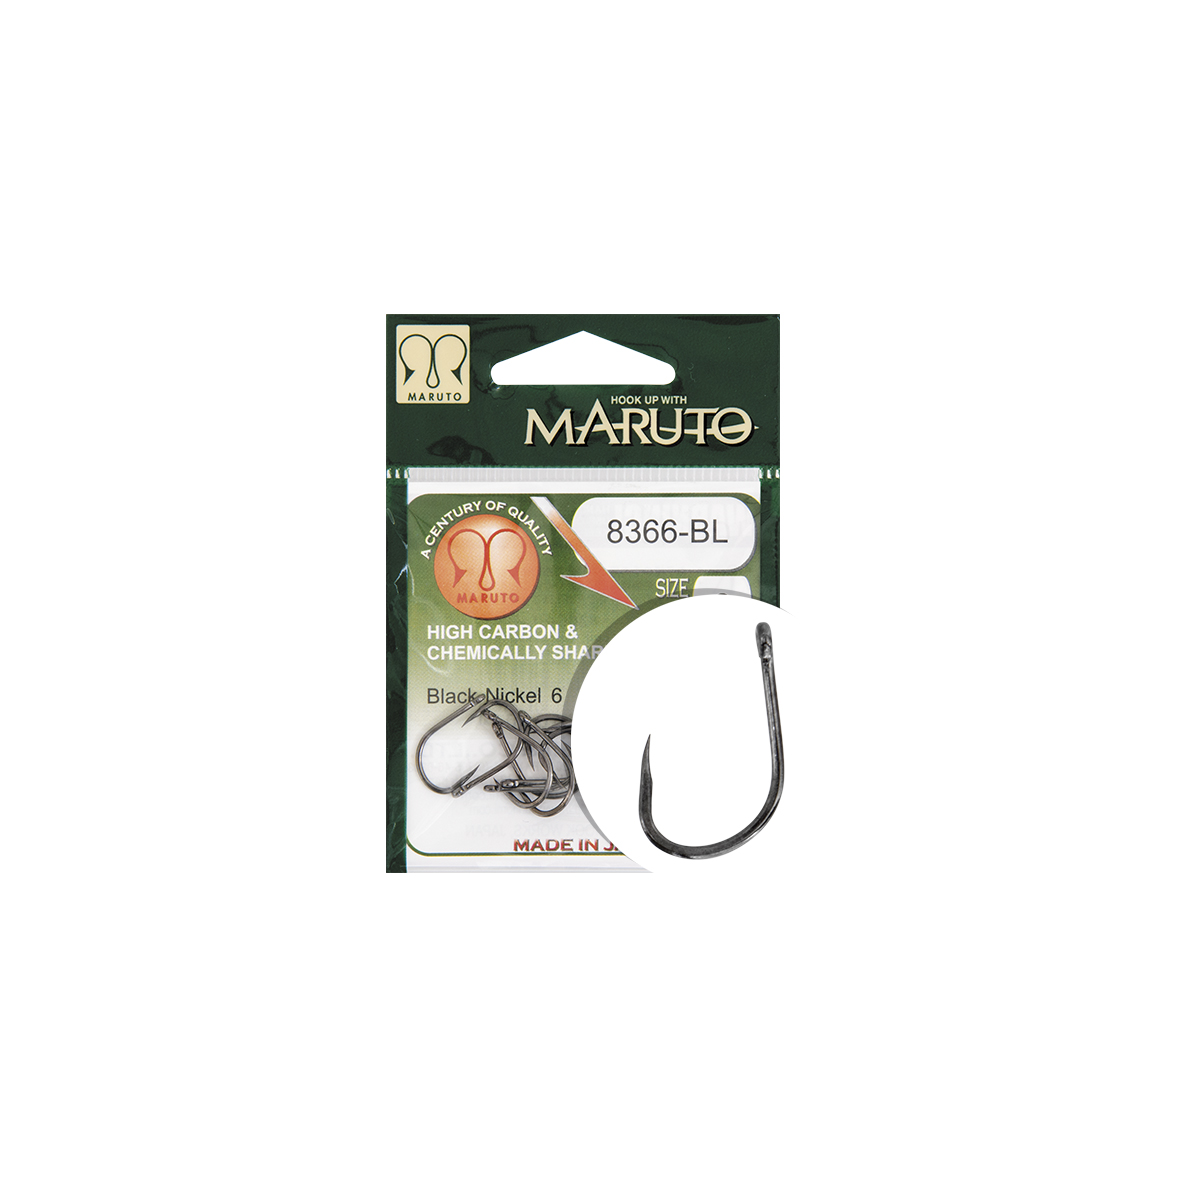 MARUTO HOROG 8366BL CARP HOOKS BARBLESS STRAIGHT EYE FORGED REVERSED RINGED HC  BLACK NICKEL 4